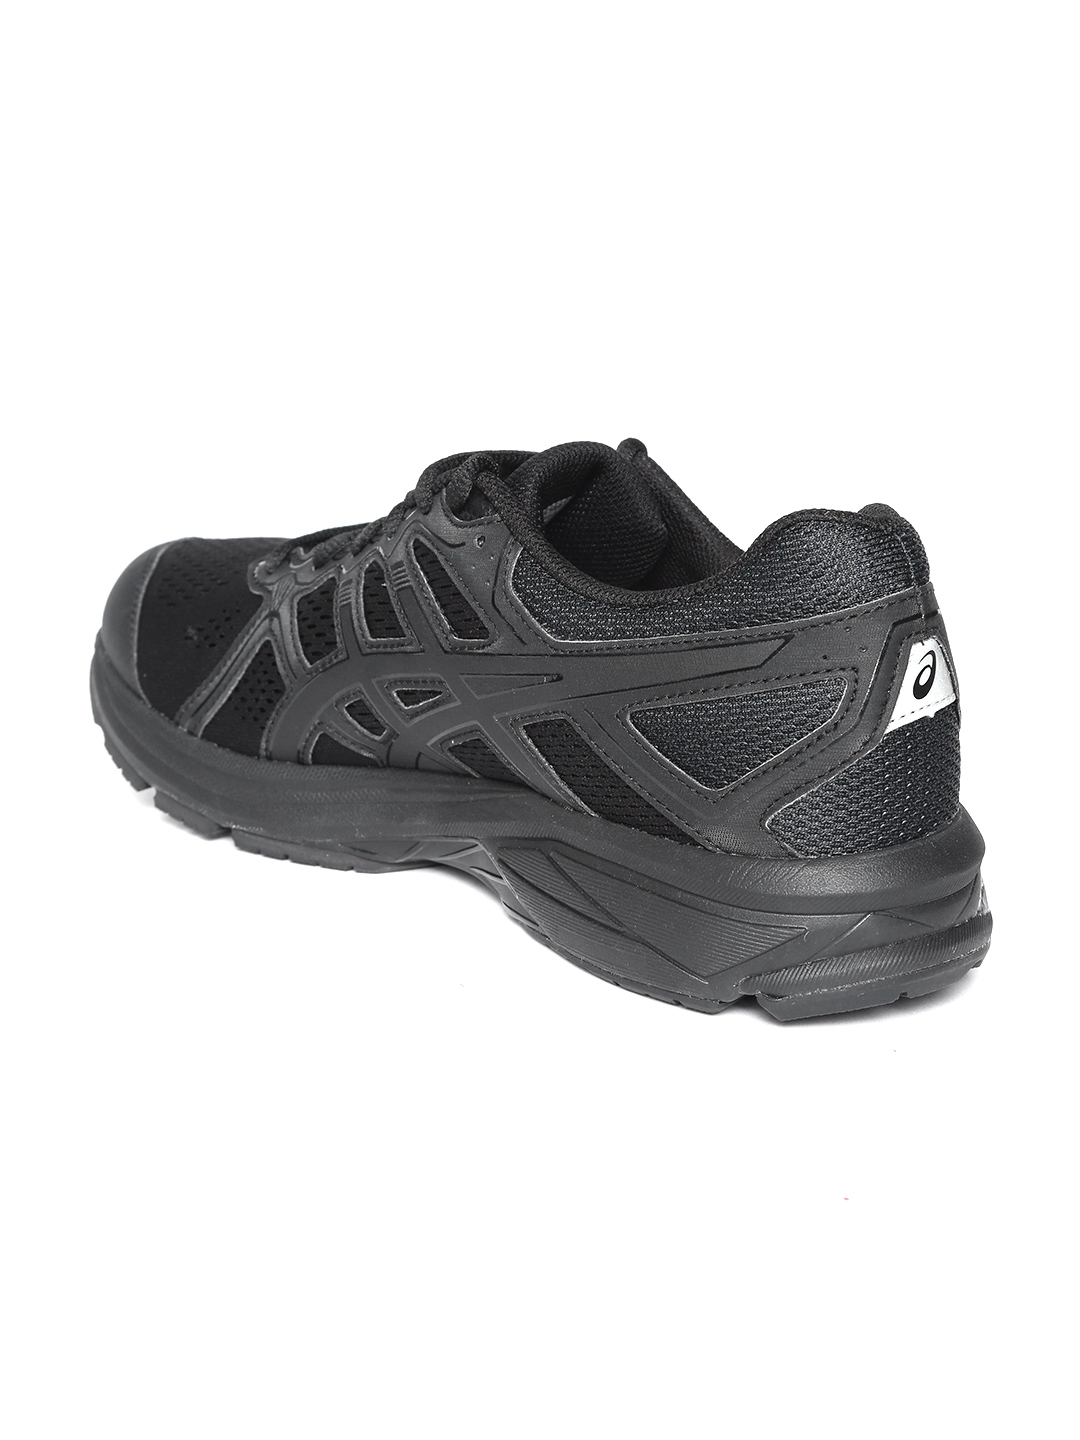 a8cce163e80 Buy ASICS Men Black GEL SILEO Running Shoes - Sports Shoes for Men ...